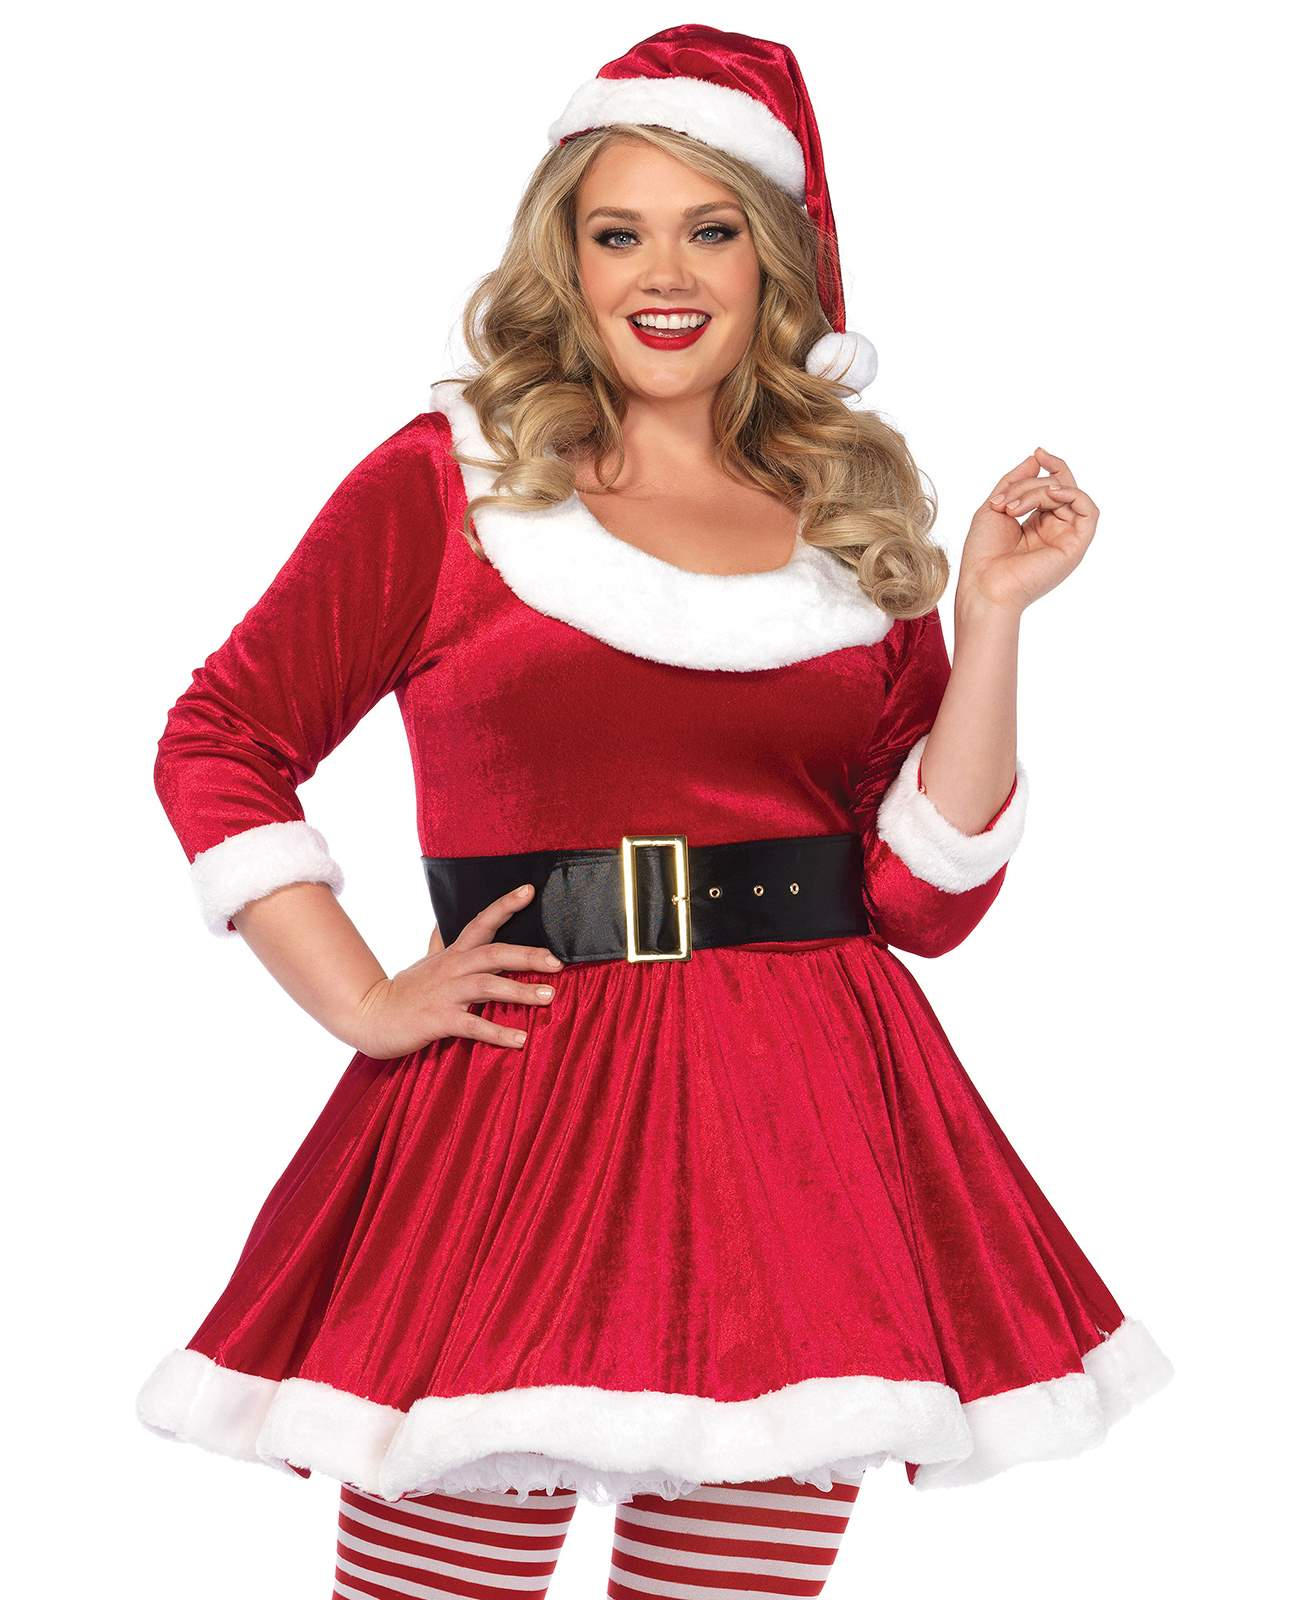 a4300a31403 Shop Christmas Costumes Perth | Hurly Burly - Hurly Burly ABN ...